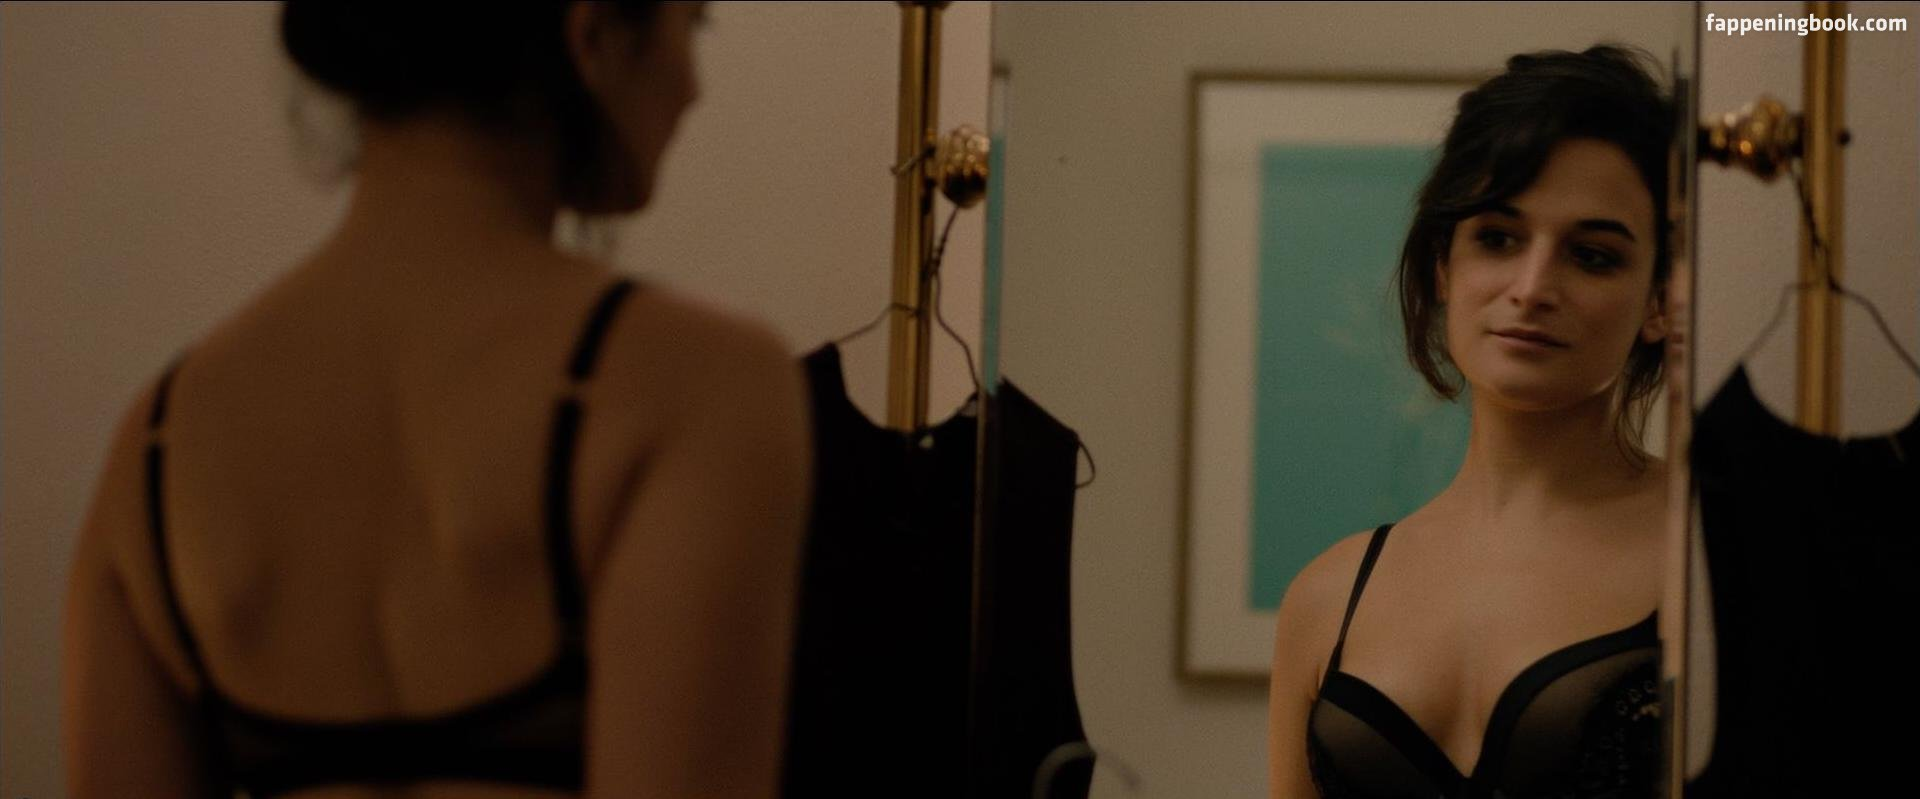 Angie Simms Nude jenny slate nude, sexy, the fappening, uncensored - photo